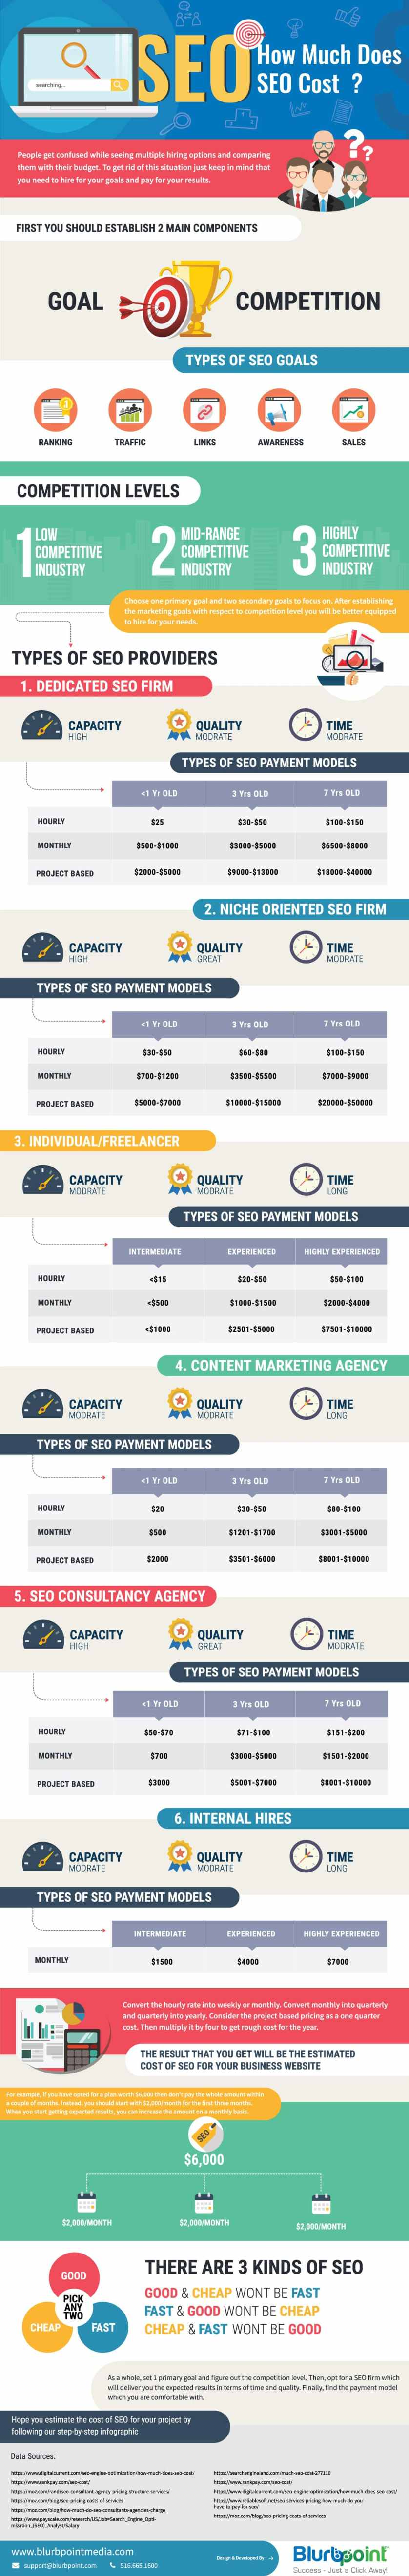 How Much Does SEO Cost – Infographic